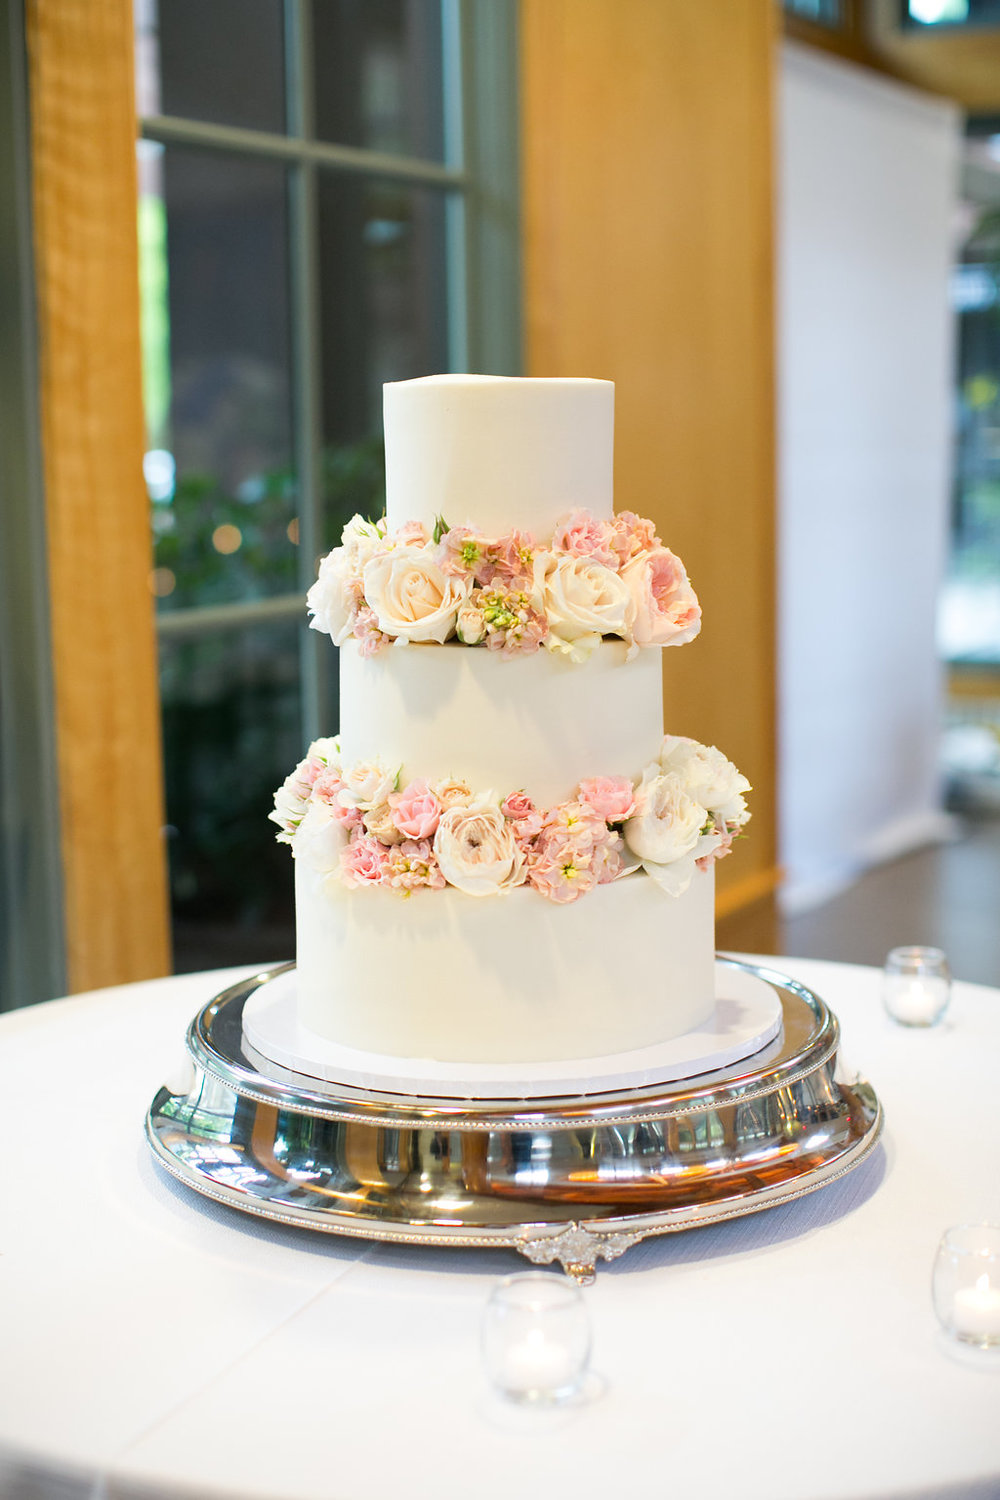 White cake decorated with flowers by Simply Cakes NC